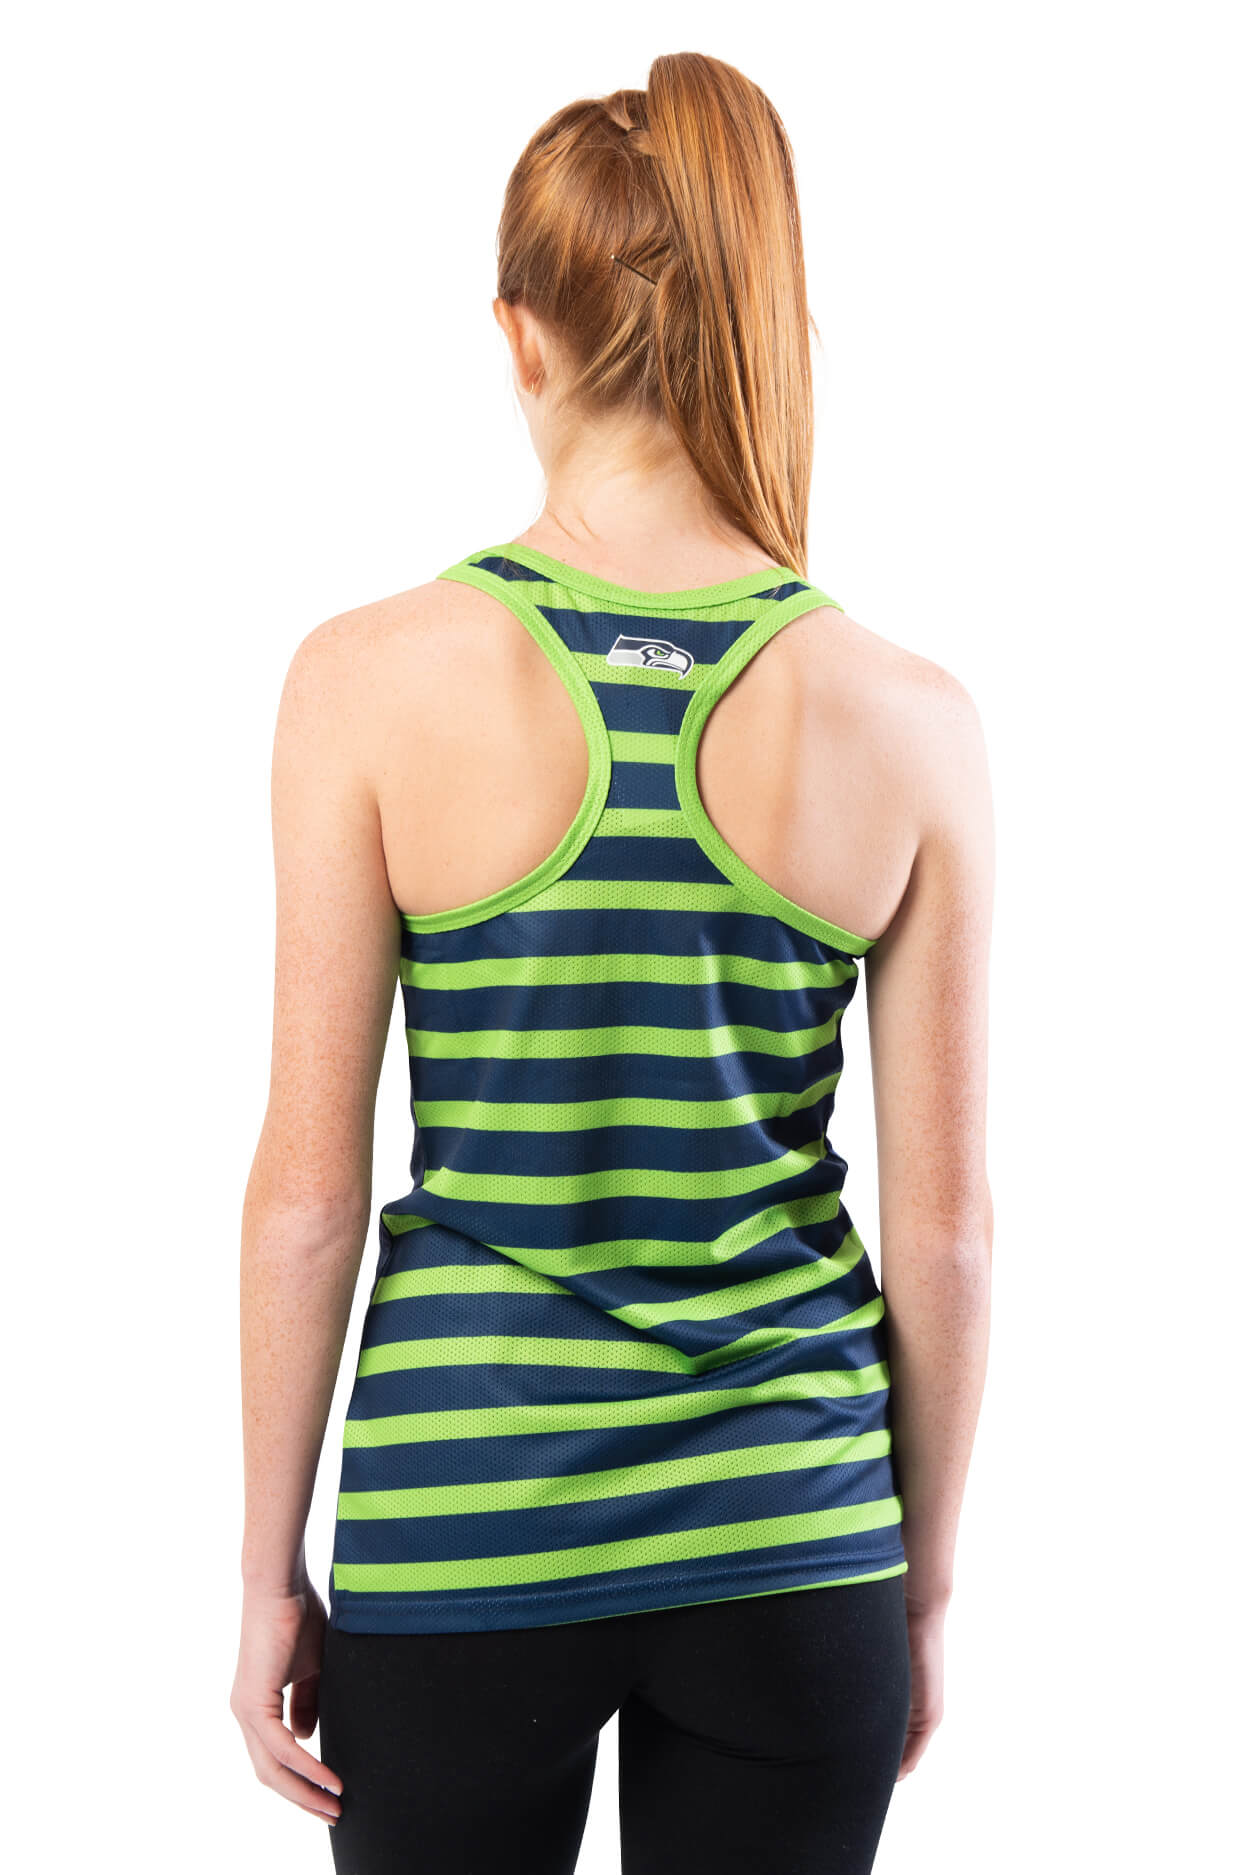 NFL Seattle Seahawks Women's Jersey Tank Top|Seattle Seahawks